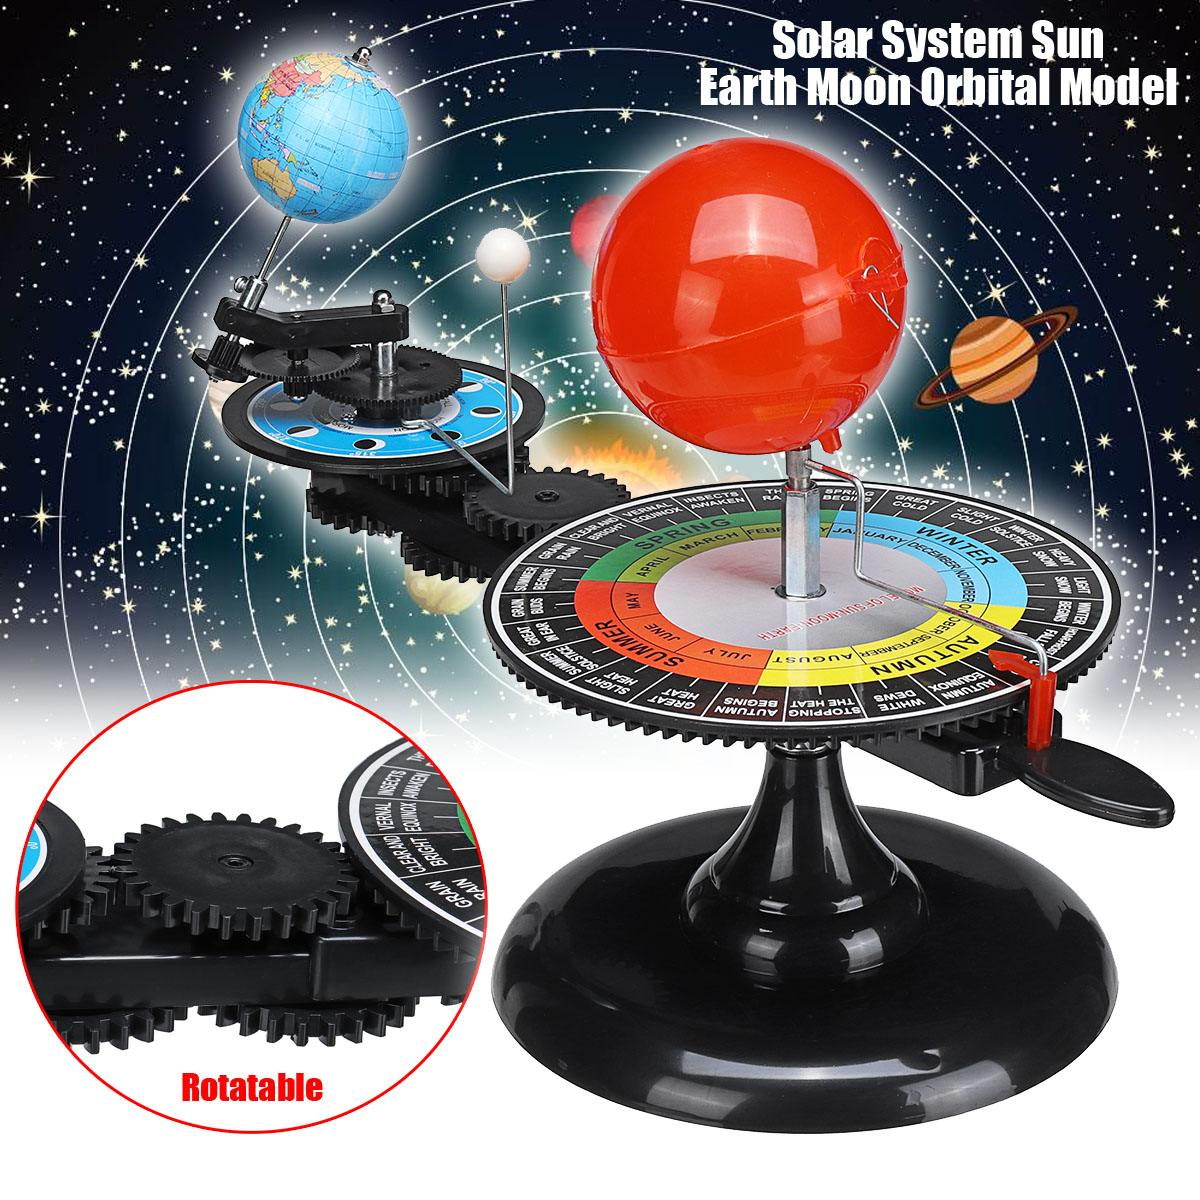 Solar System Globes Sun Earth Moon Orbital Planetarium Model Teaching Tool Education Astronomy Demo for Student Children ToySolar System Globes Sun Earth Moon Orbital Planetarium Model Teaching Tool Education Astronomy Demo for Student Children Toy